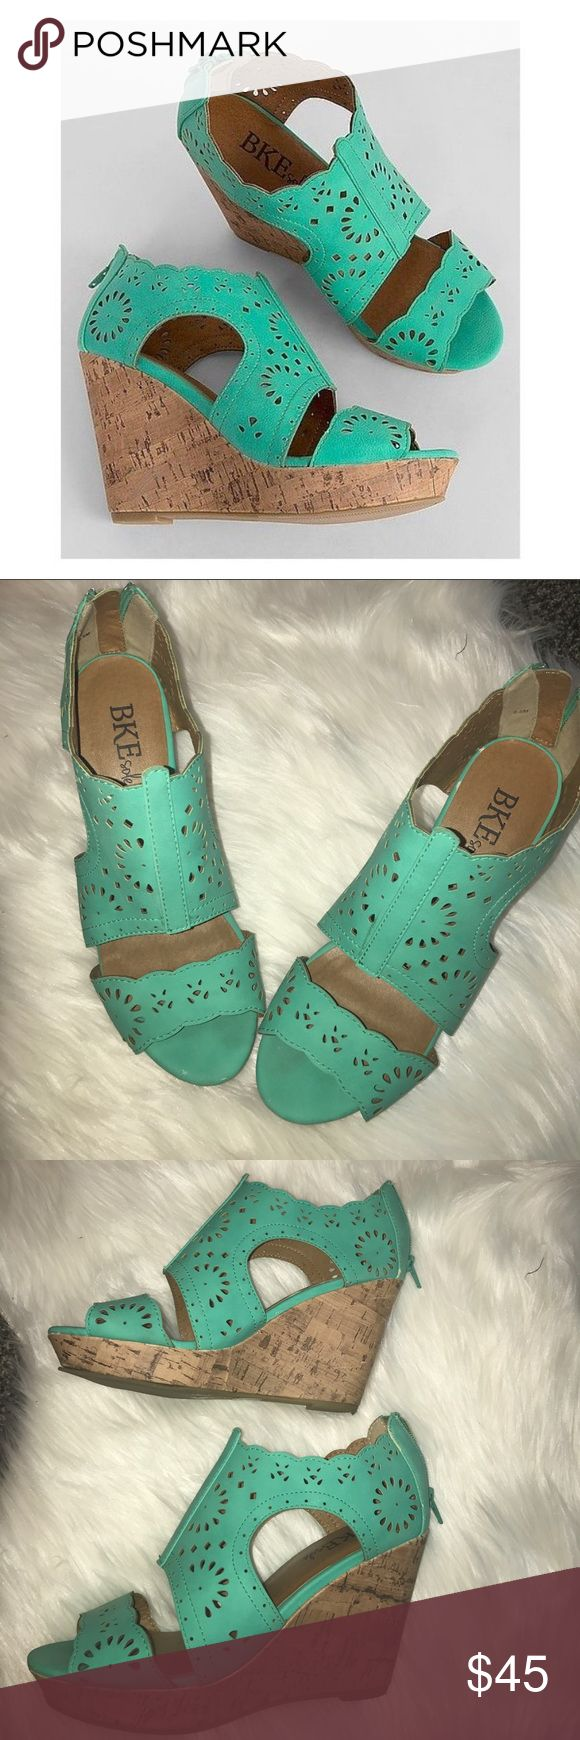 BKE teal wedges These wedges are perfect for summer!! They have been only worn a few times and still are in very good condition, they have a few small scuffs on the toe pictured barely noticeable and some on one of the back of the cork heel also barely noticeable. Lots of wear left! BKE Shoes